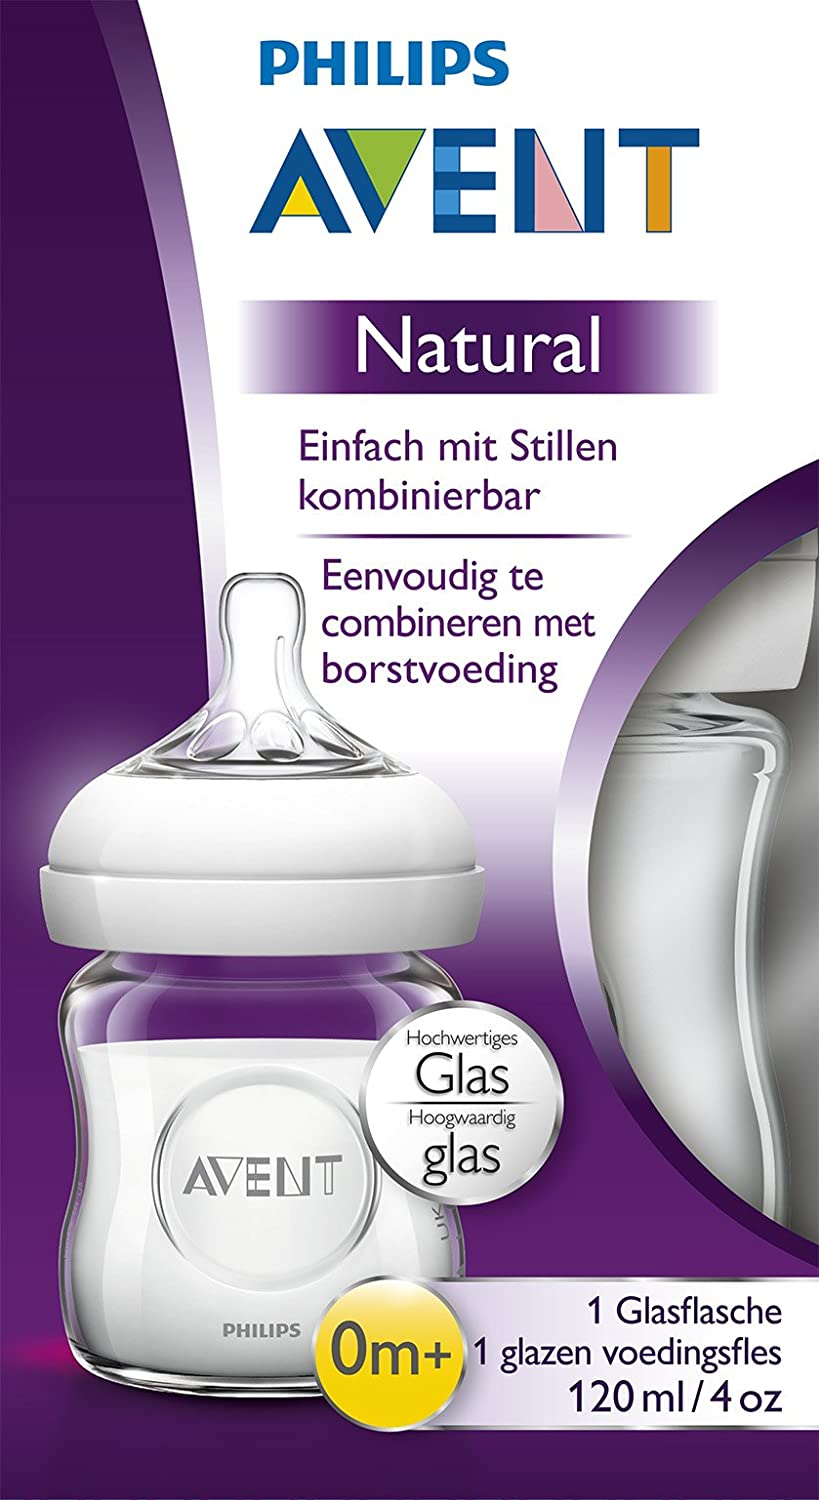 Philips AVENT Life-Like Glass Bottle Clear